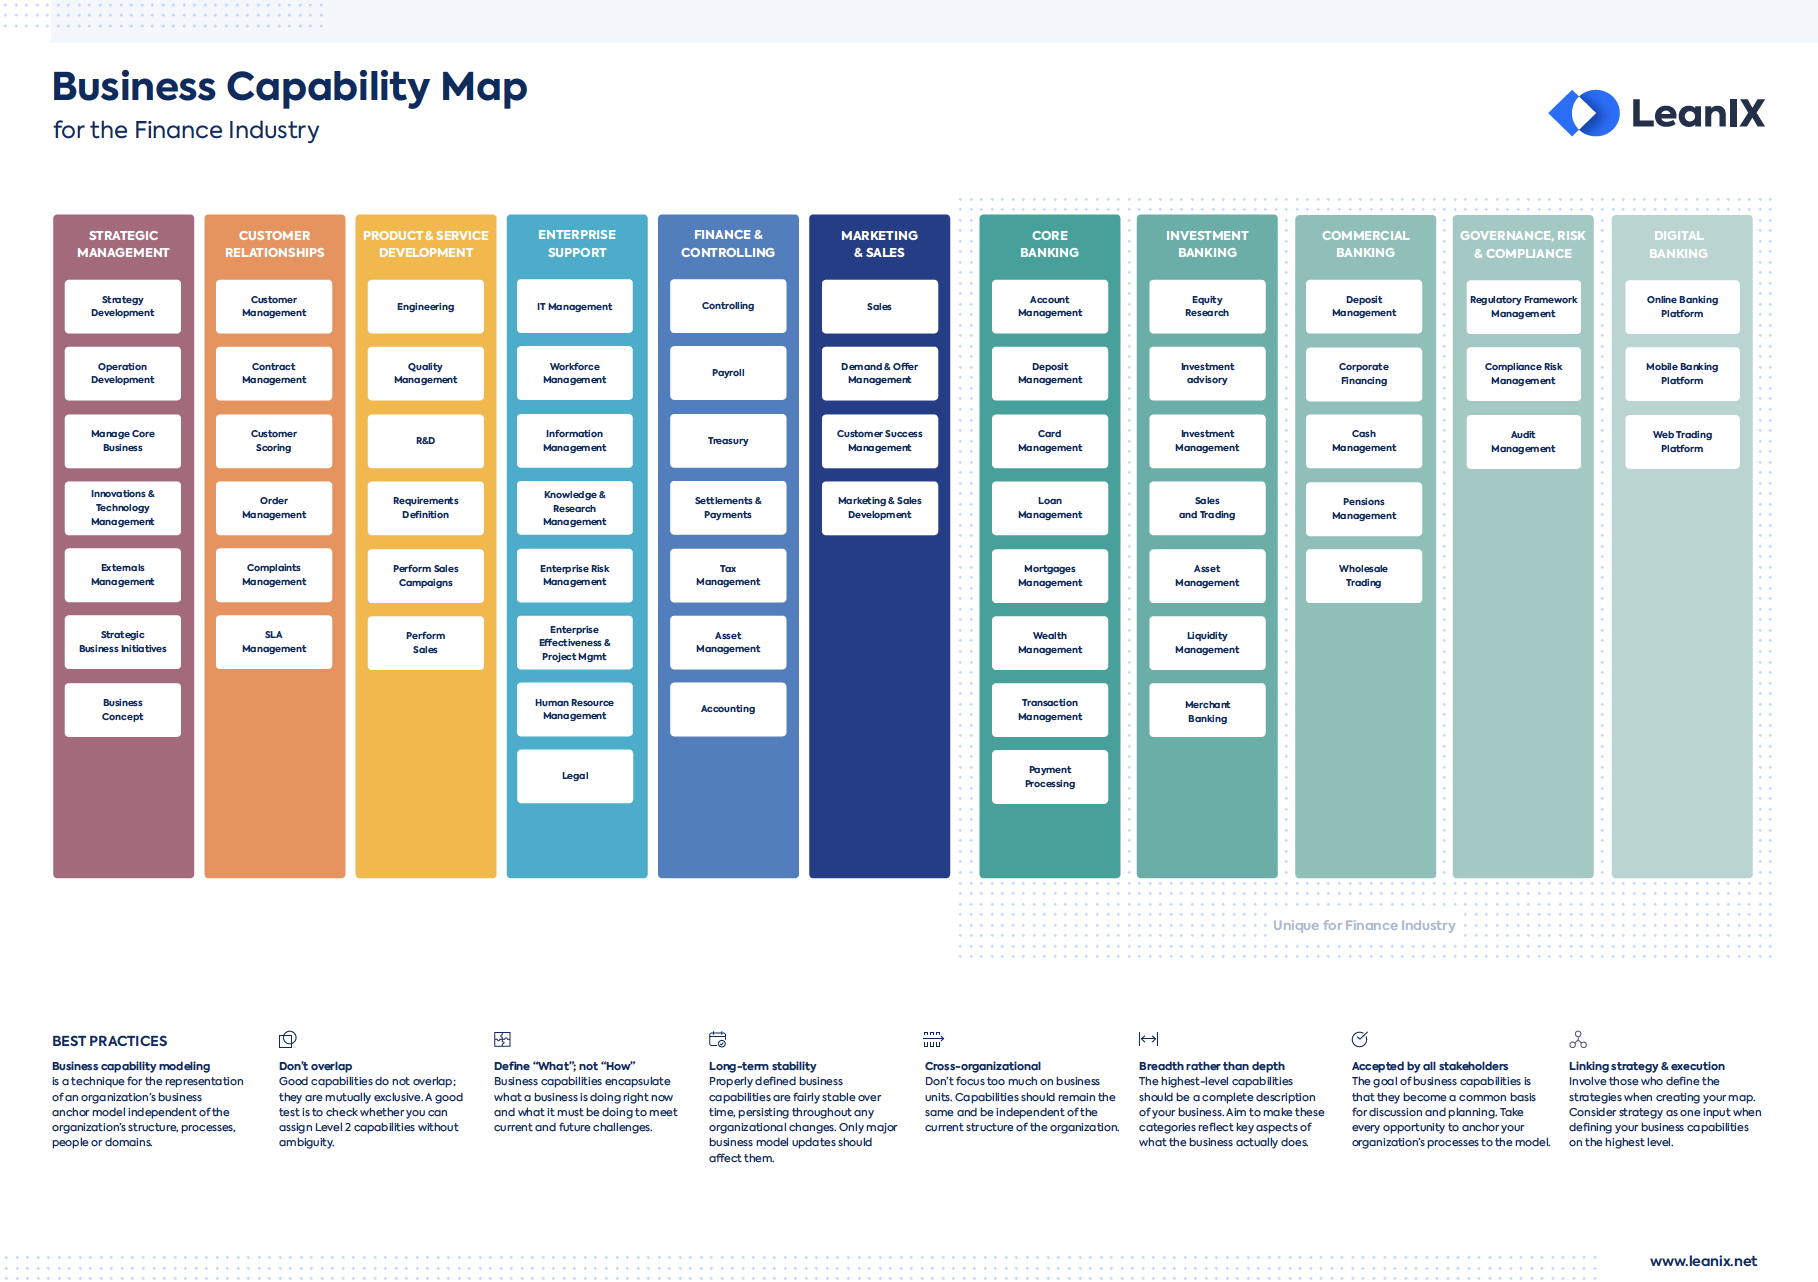 Business Capability Map for the Finance Industry